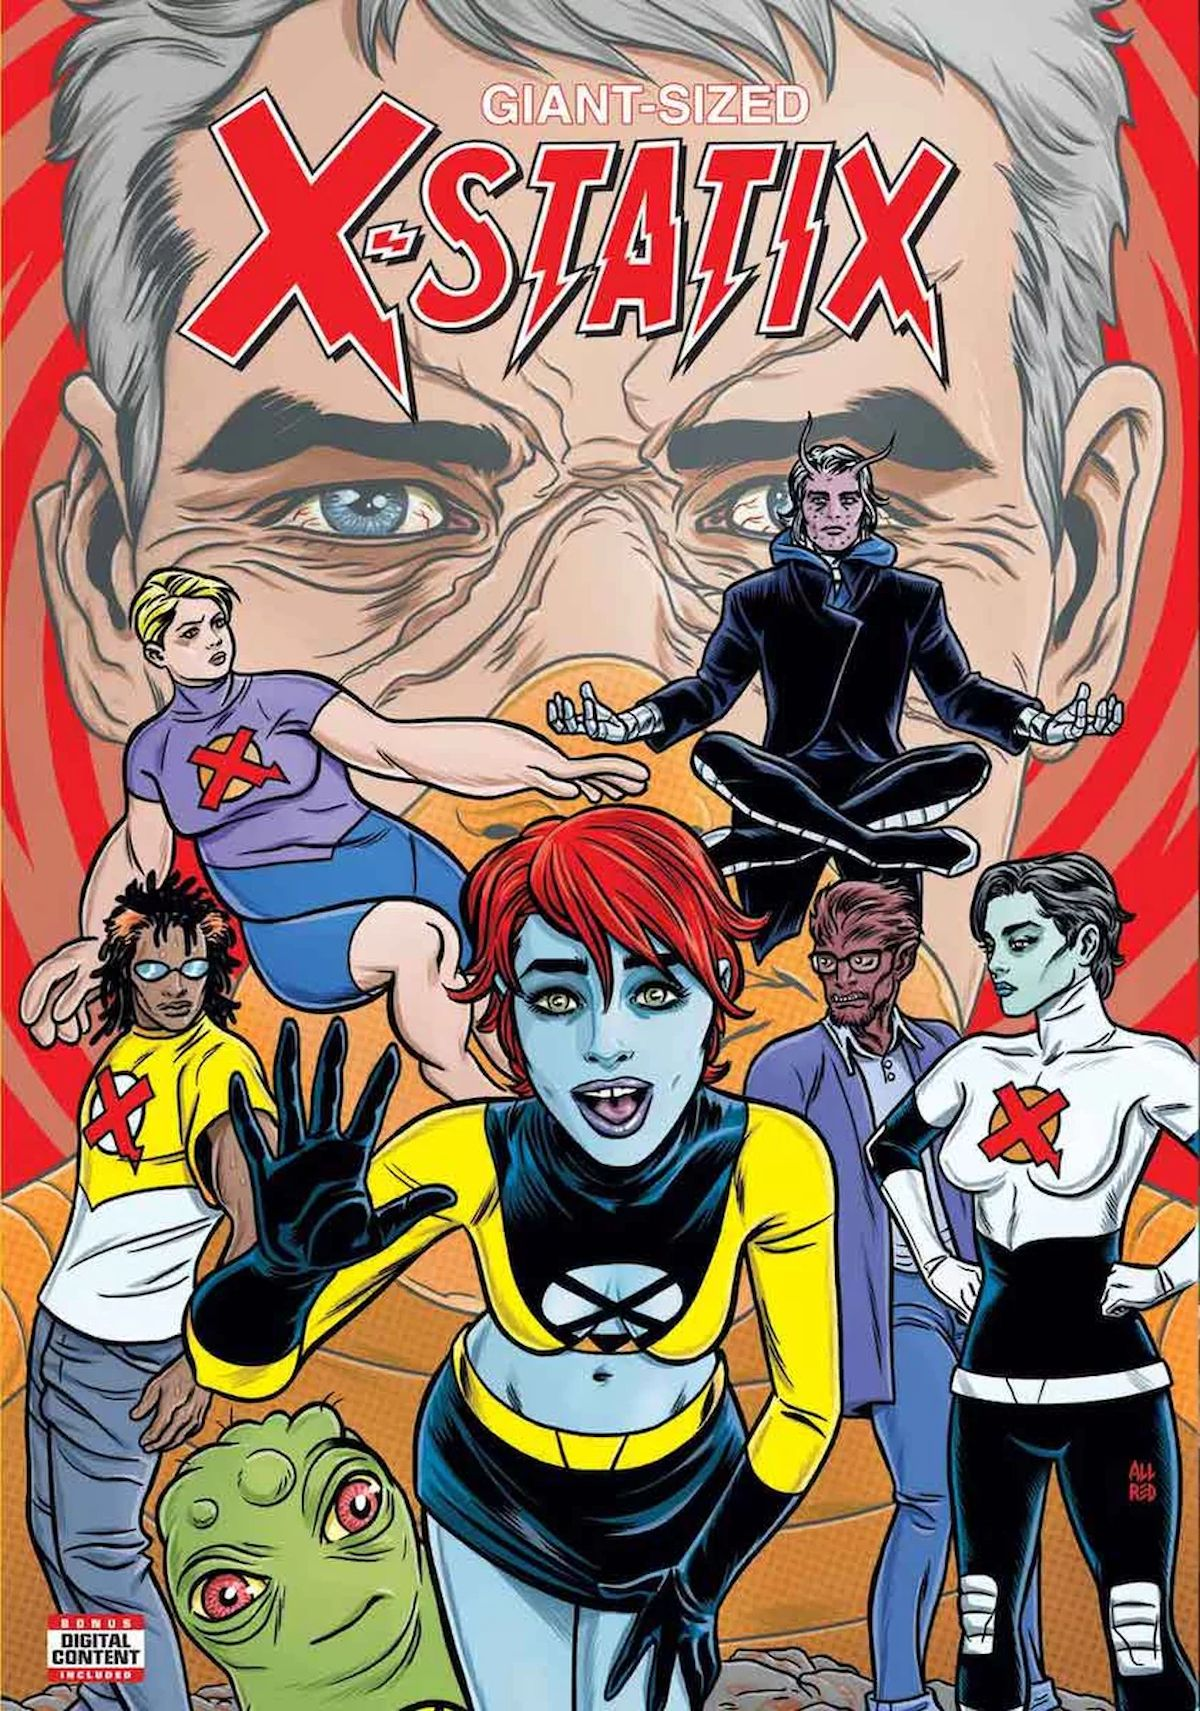 X-Statix Giant Sized